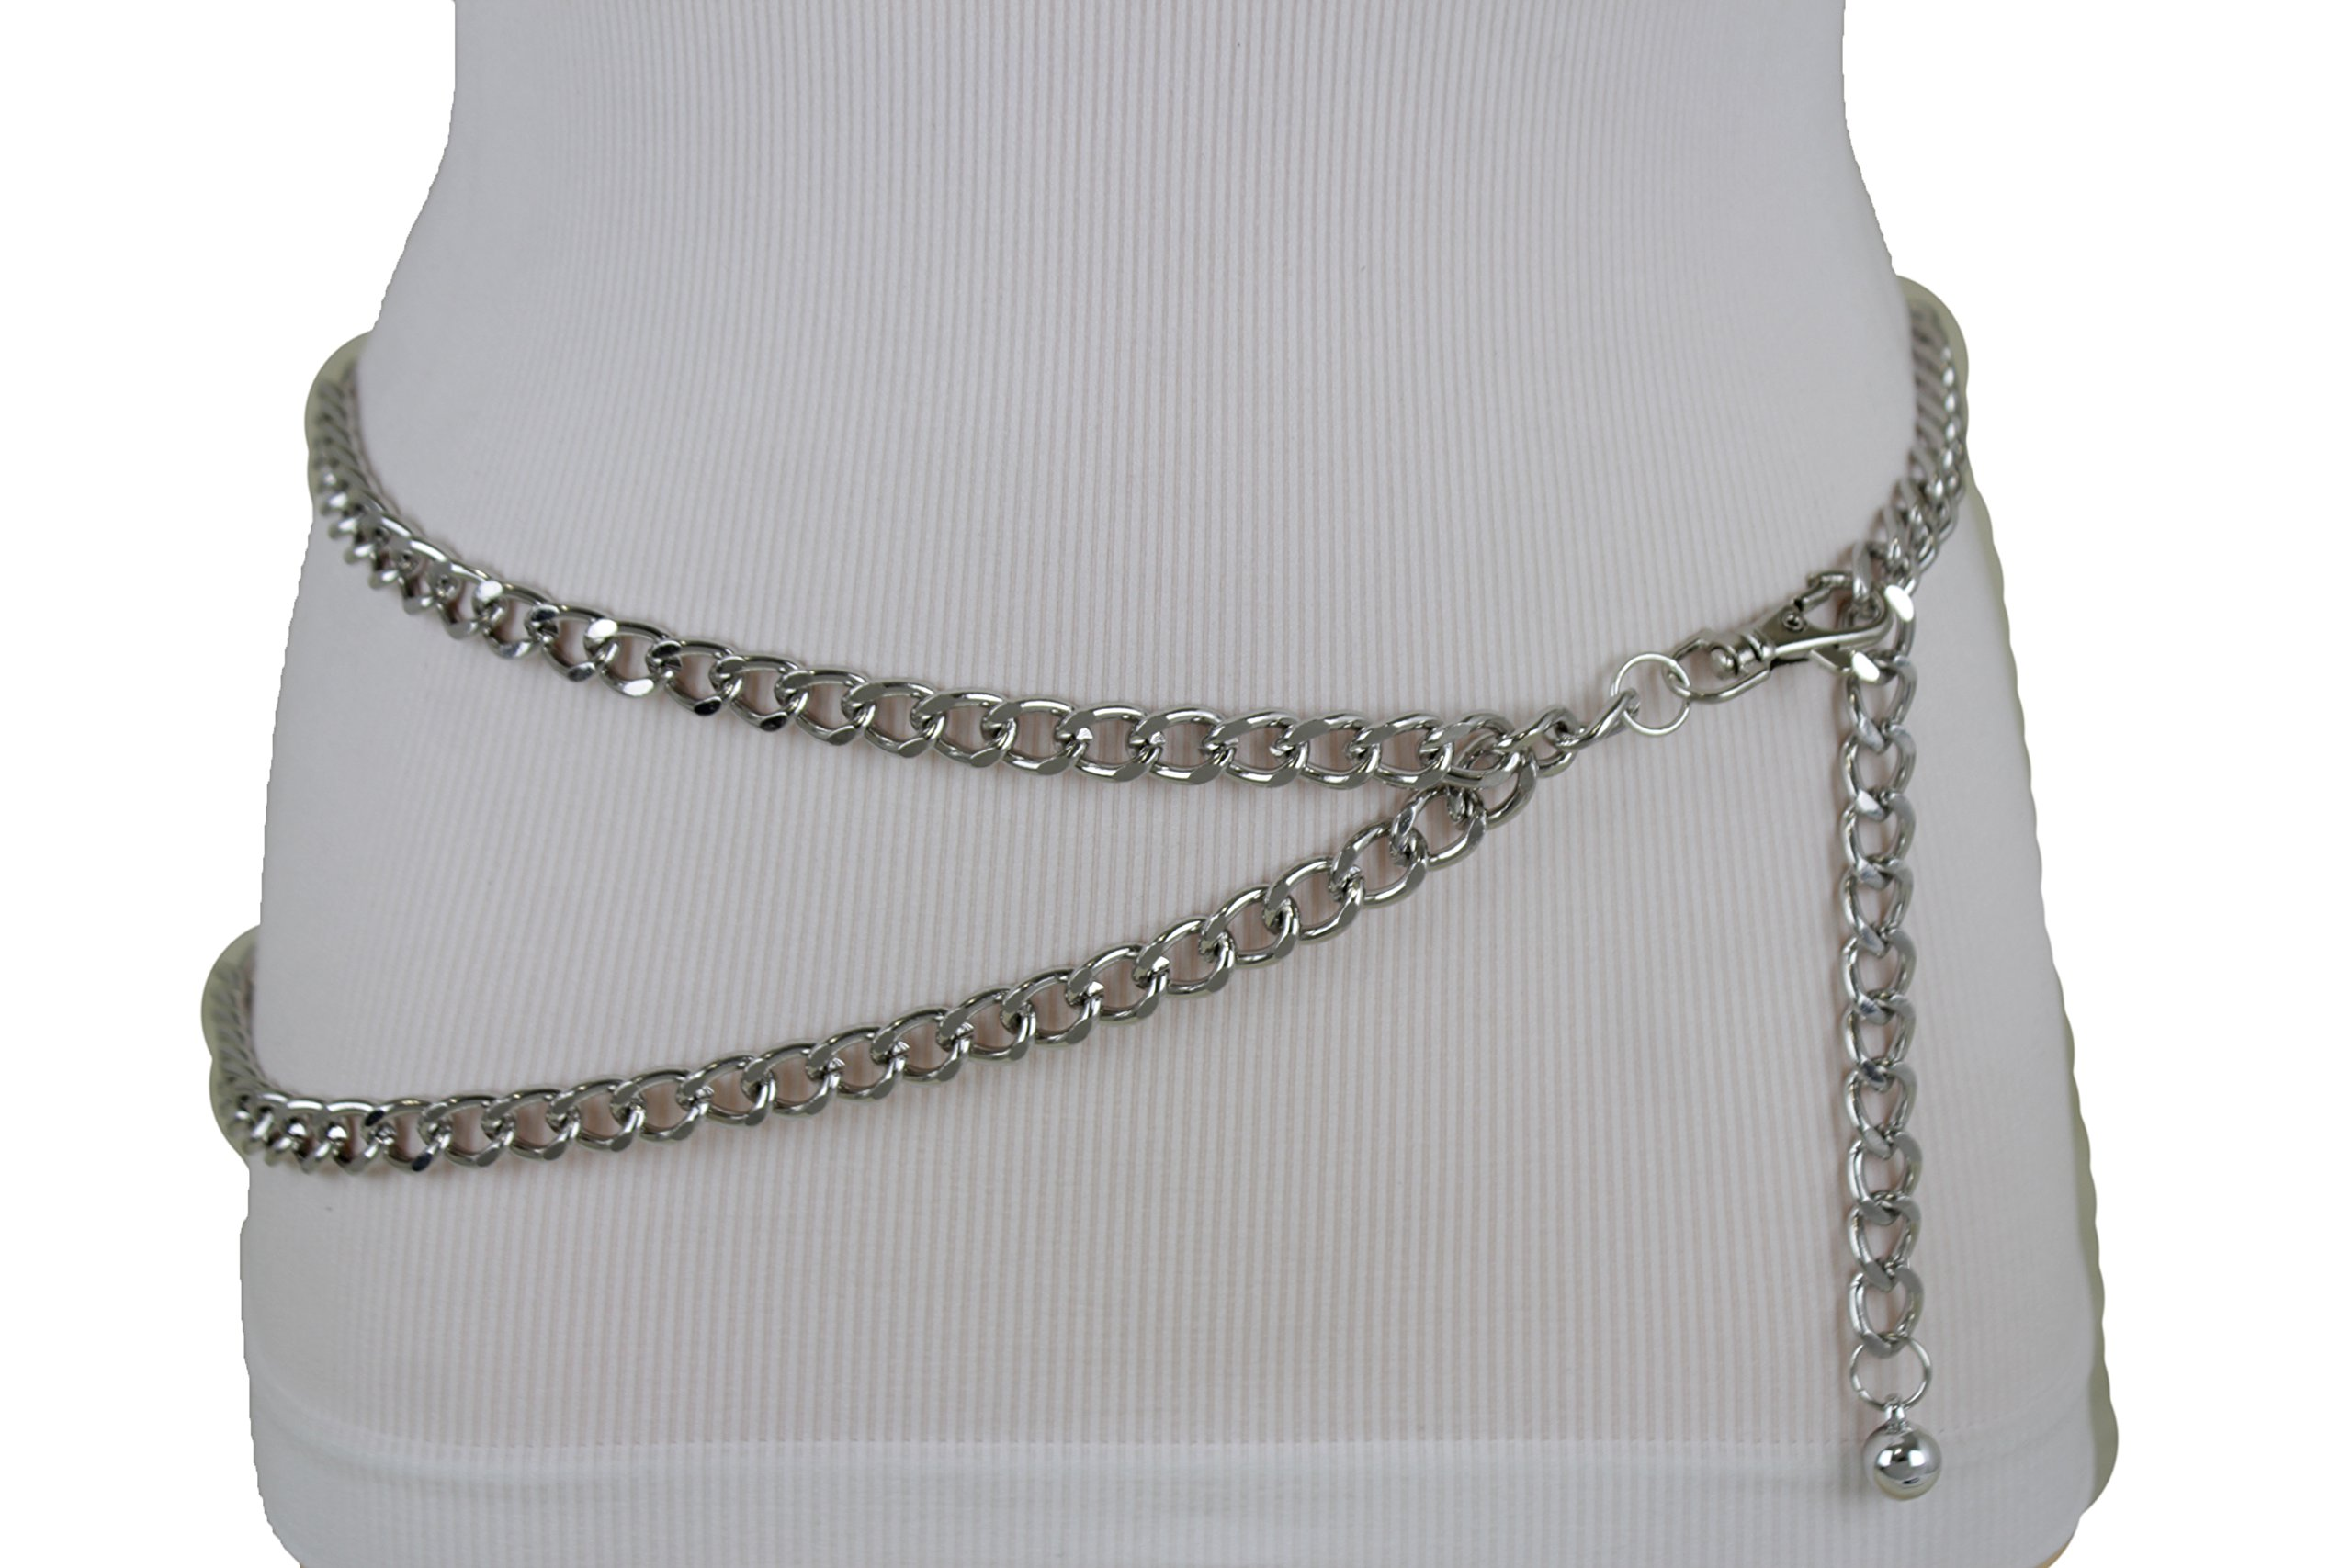 TFJ Women Narrow Belt Hip High Waist Silver Metal Chunky Chain Strands S M L